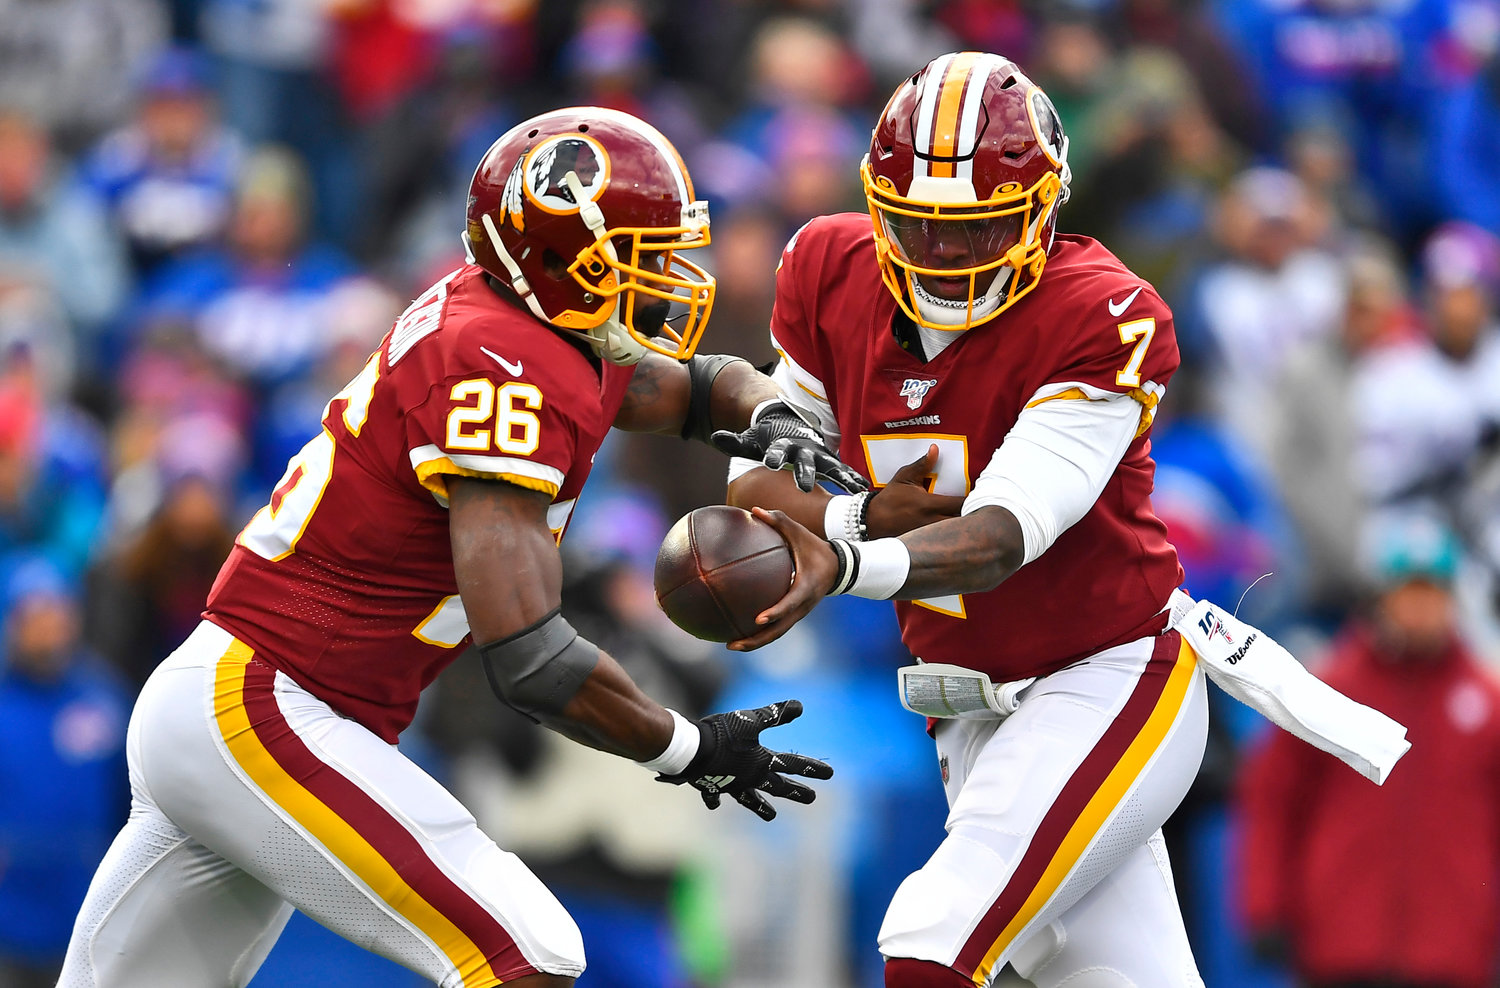 STARTING FOR THE REDSKINS — Quarterback Dwayne Haskins hands the ball to Redskins teammate Adrian Peterson during a game against the Bills on Nov. 3. Haskins, who has been named Washington's starting quarterback for the rest of the season, will face the Jets on Sunday.